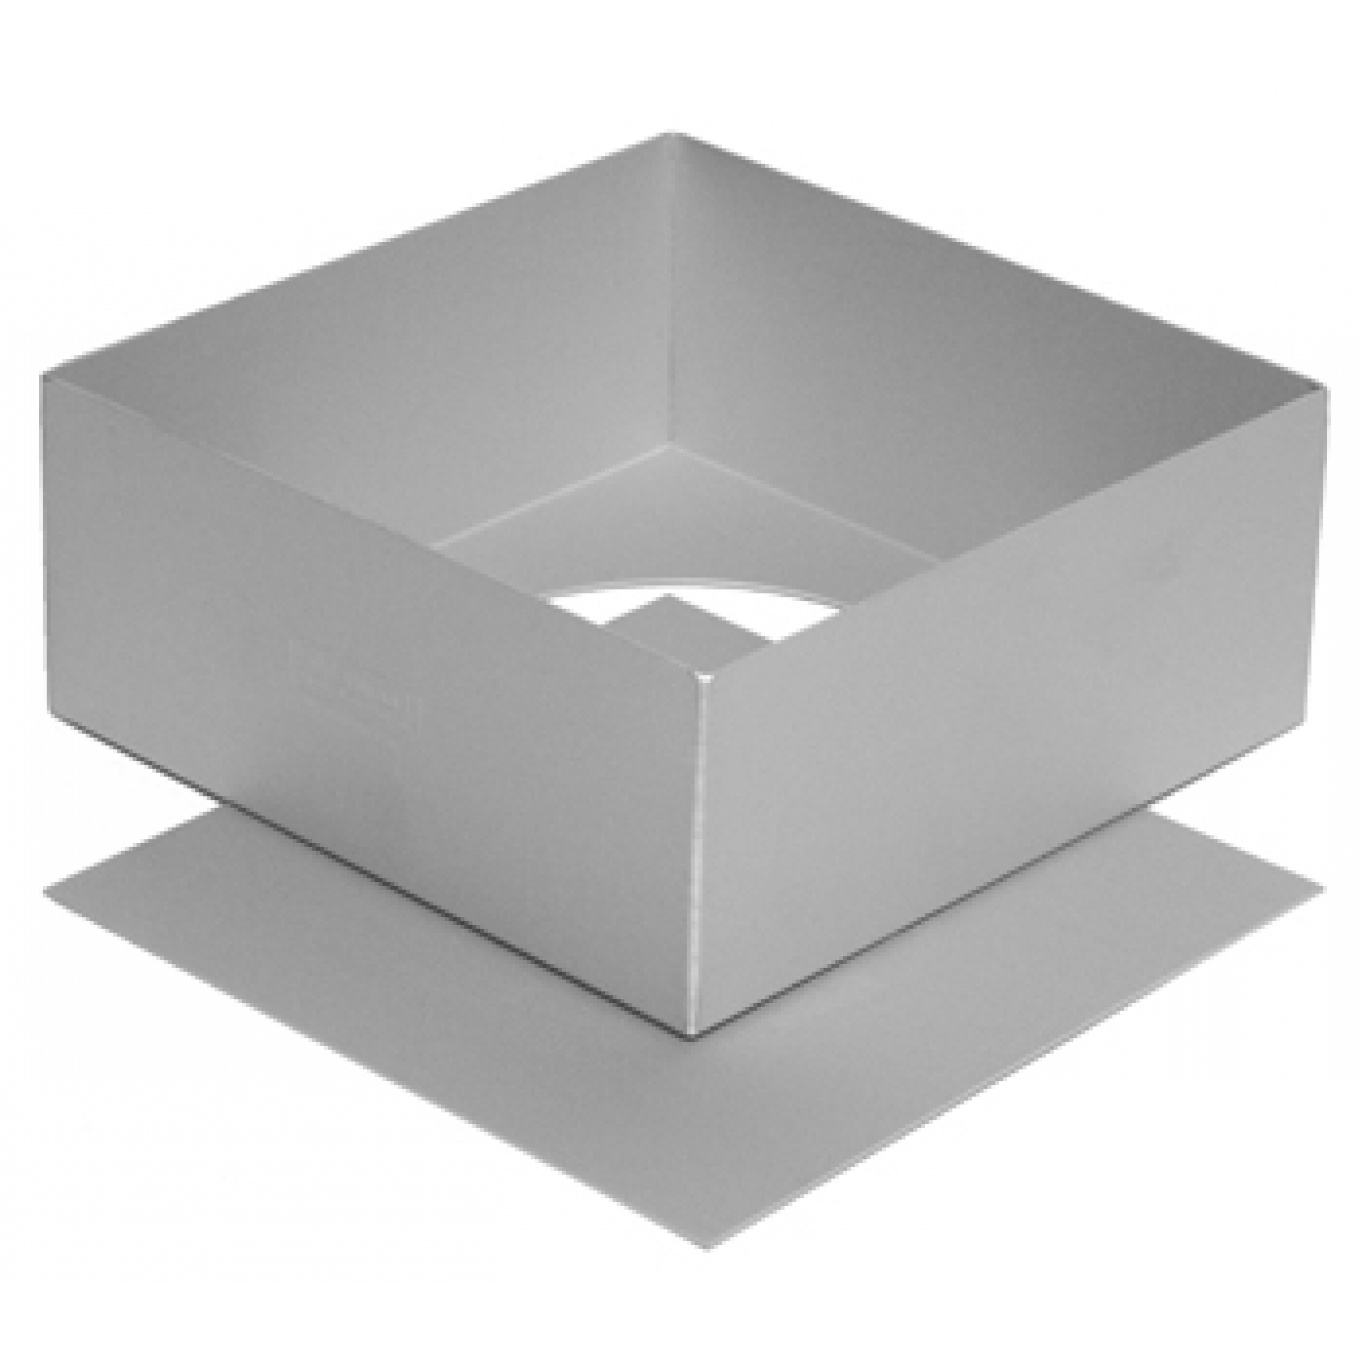 Image of Silverwood Square Cake Pan Loose Base 5ins/12.5cm